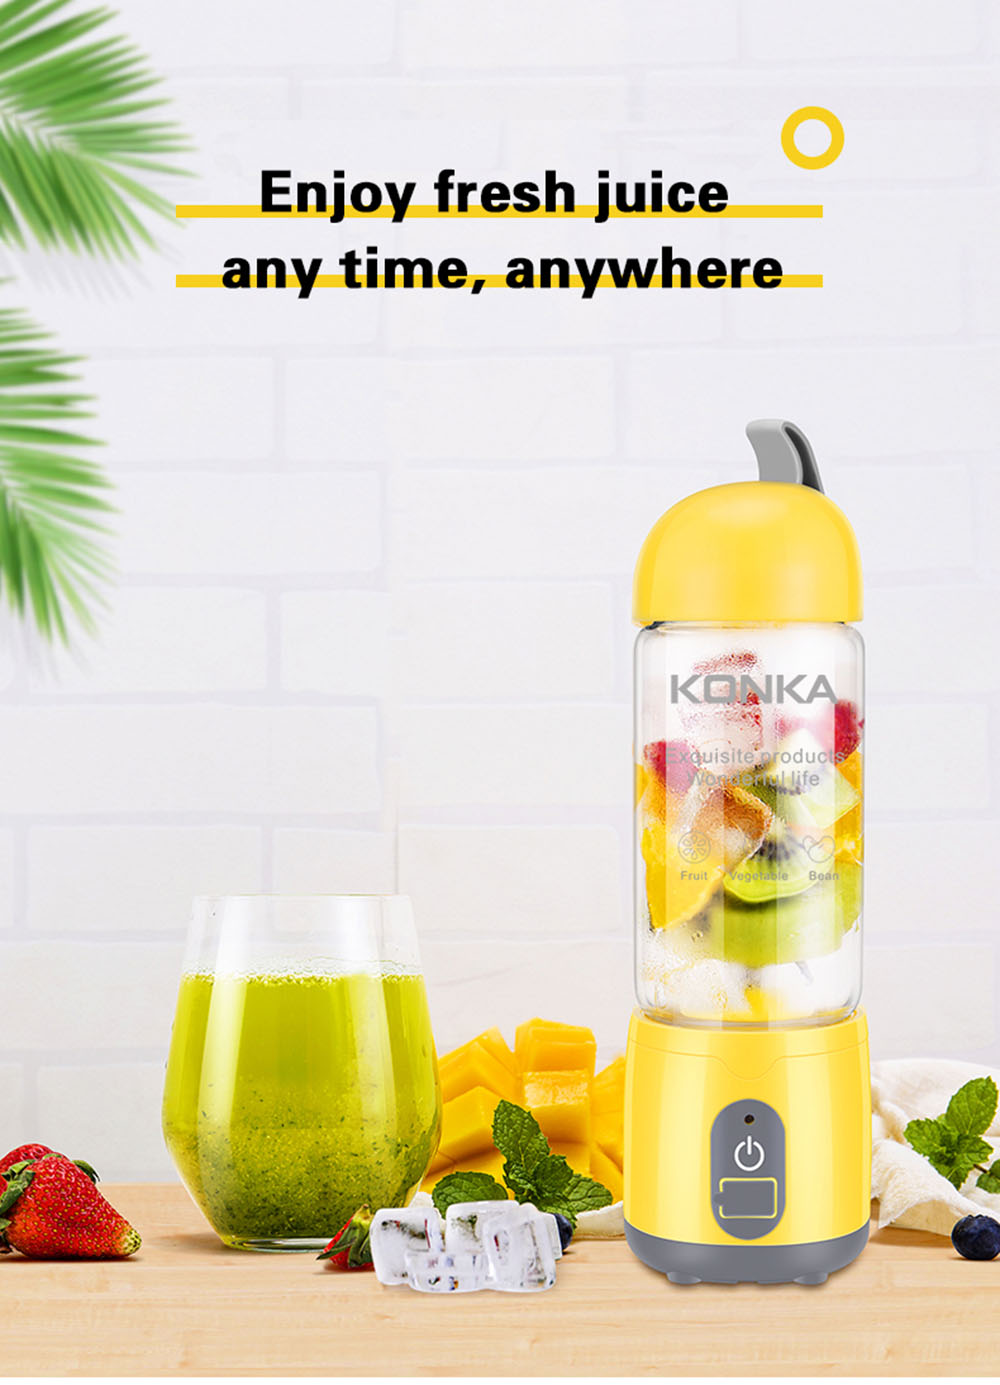 KONKA KJ-60U02 Portable USB Charging Electric Fruit Juicer Household Milkshake Blender 420ml Mix Cup